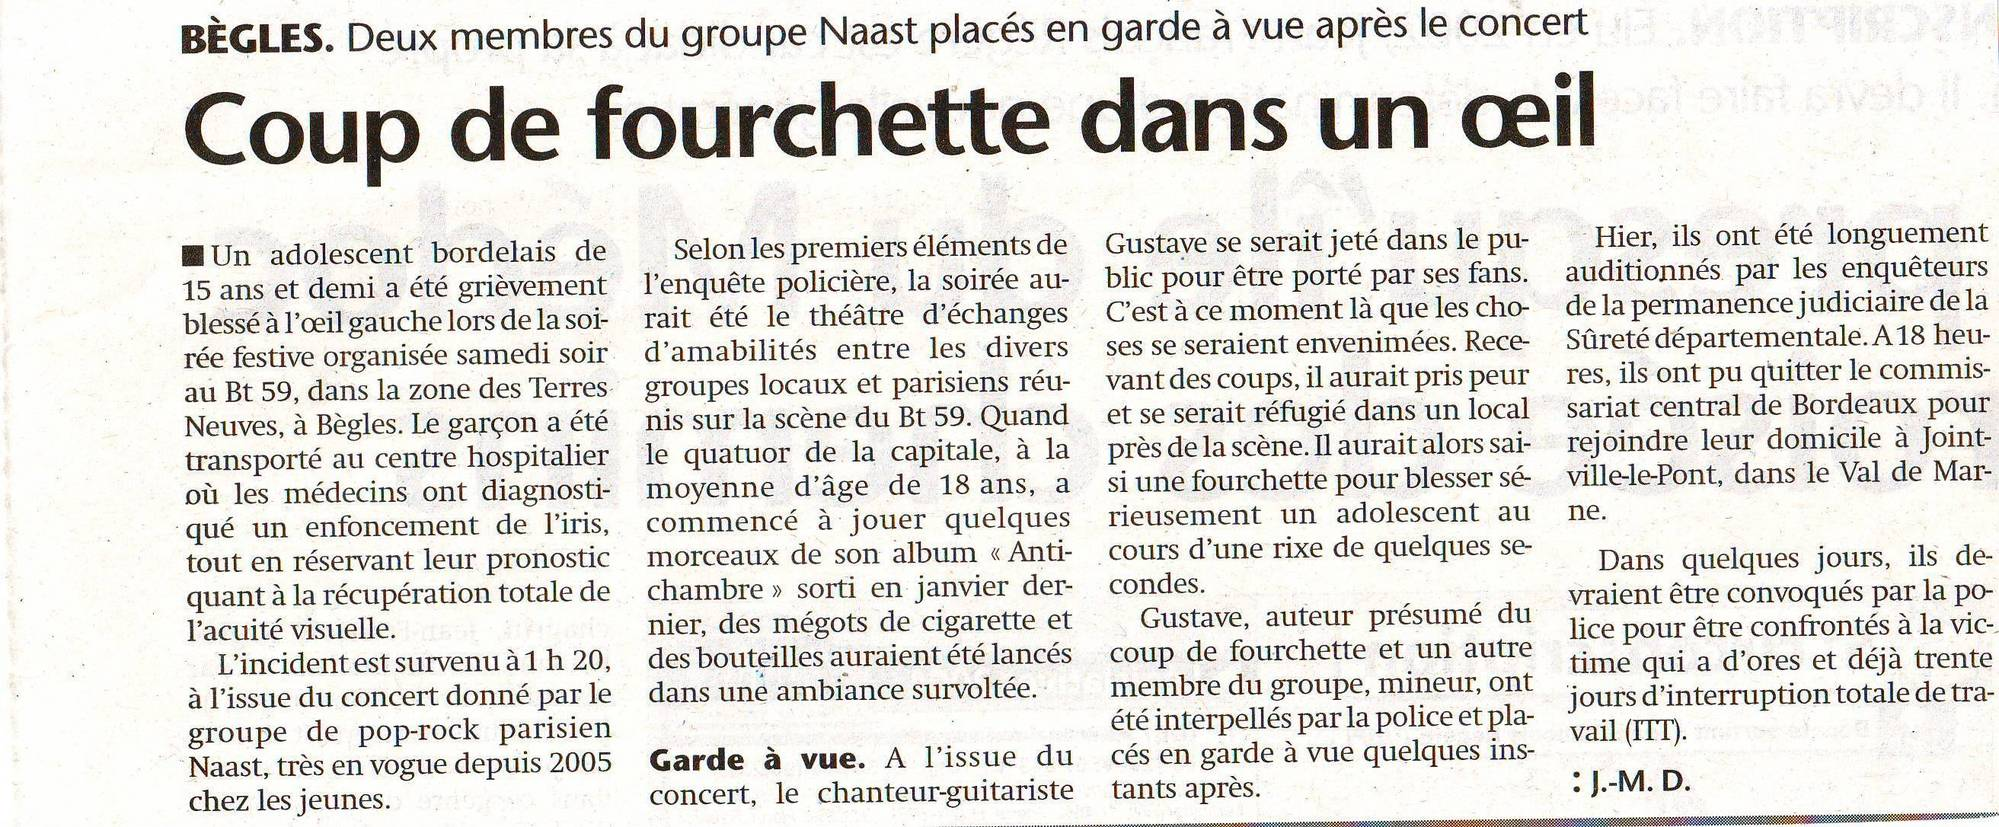 nasst n' fourchette